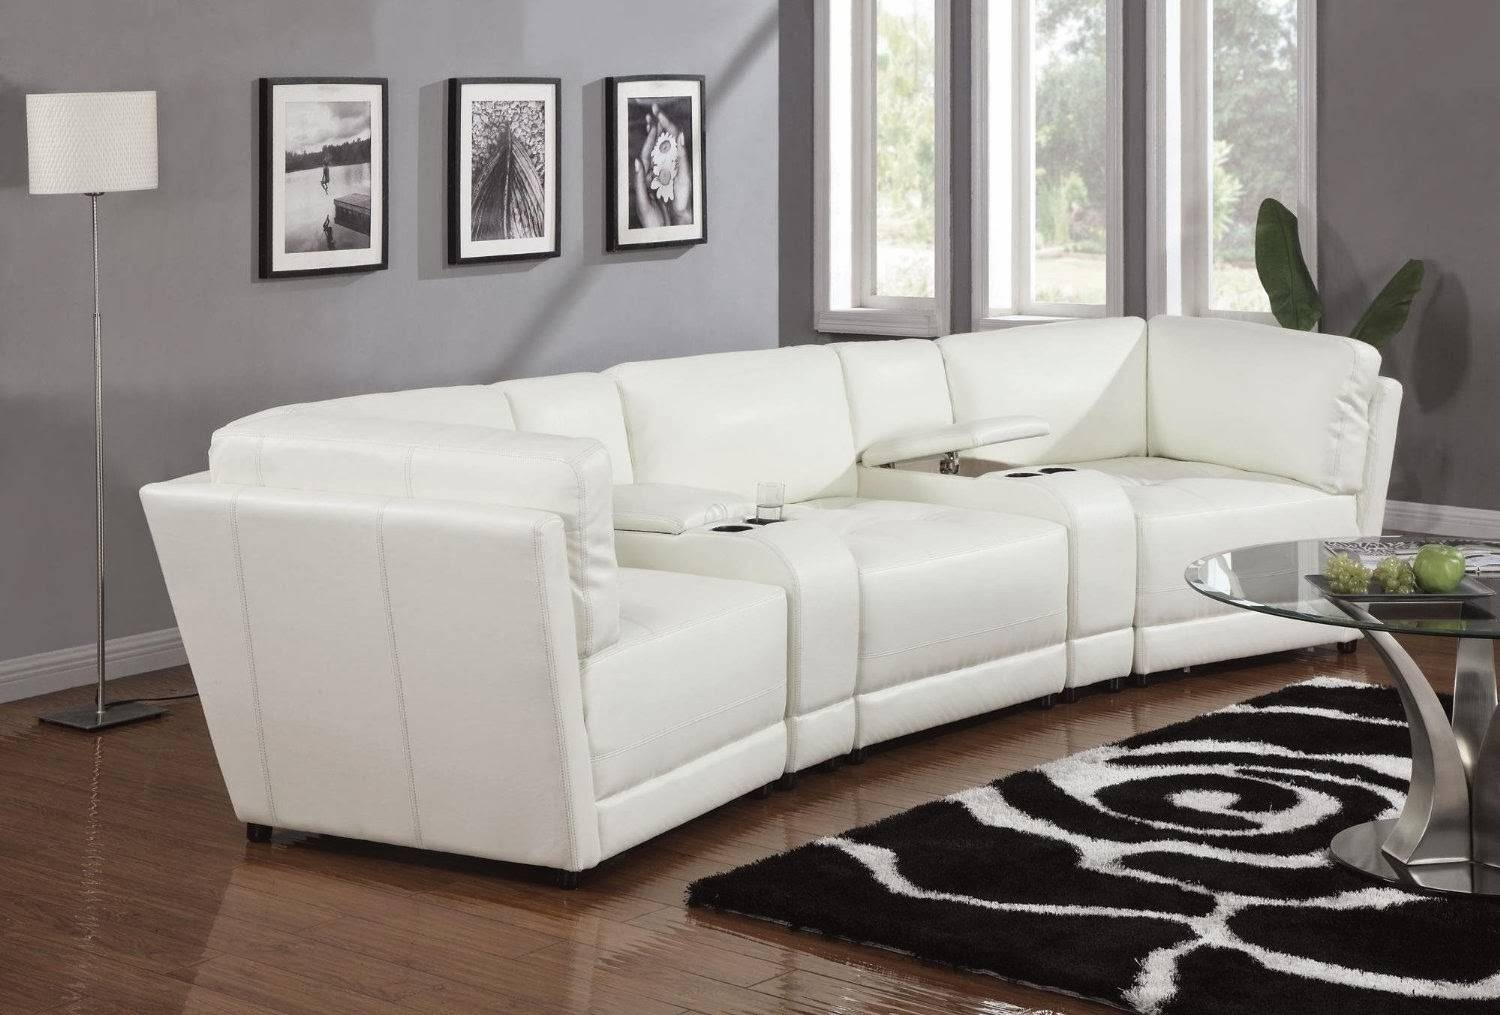 Popular Small Round Sectional Sofa 49 In Sleek Sectional Sofas regarding Sleek Sectional Sofa (Image 17 of 25)